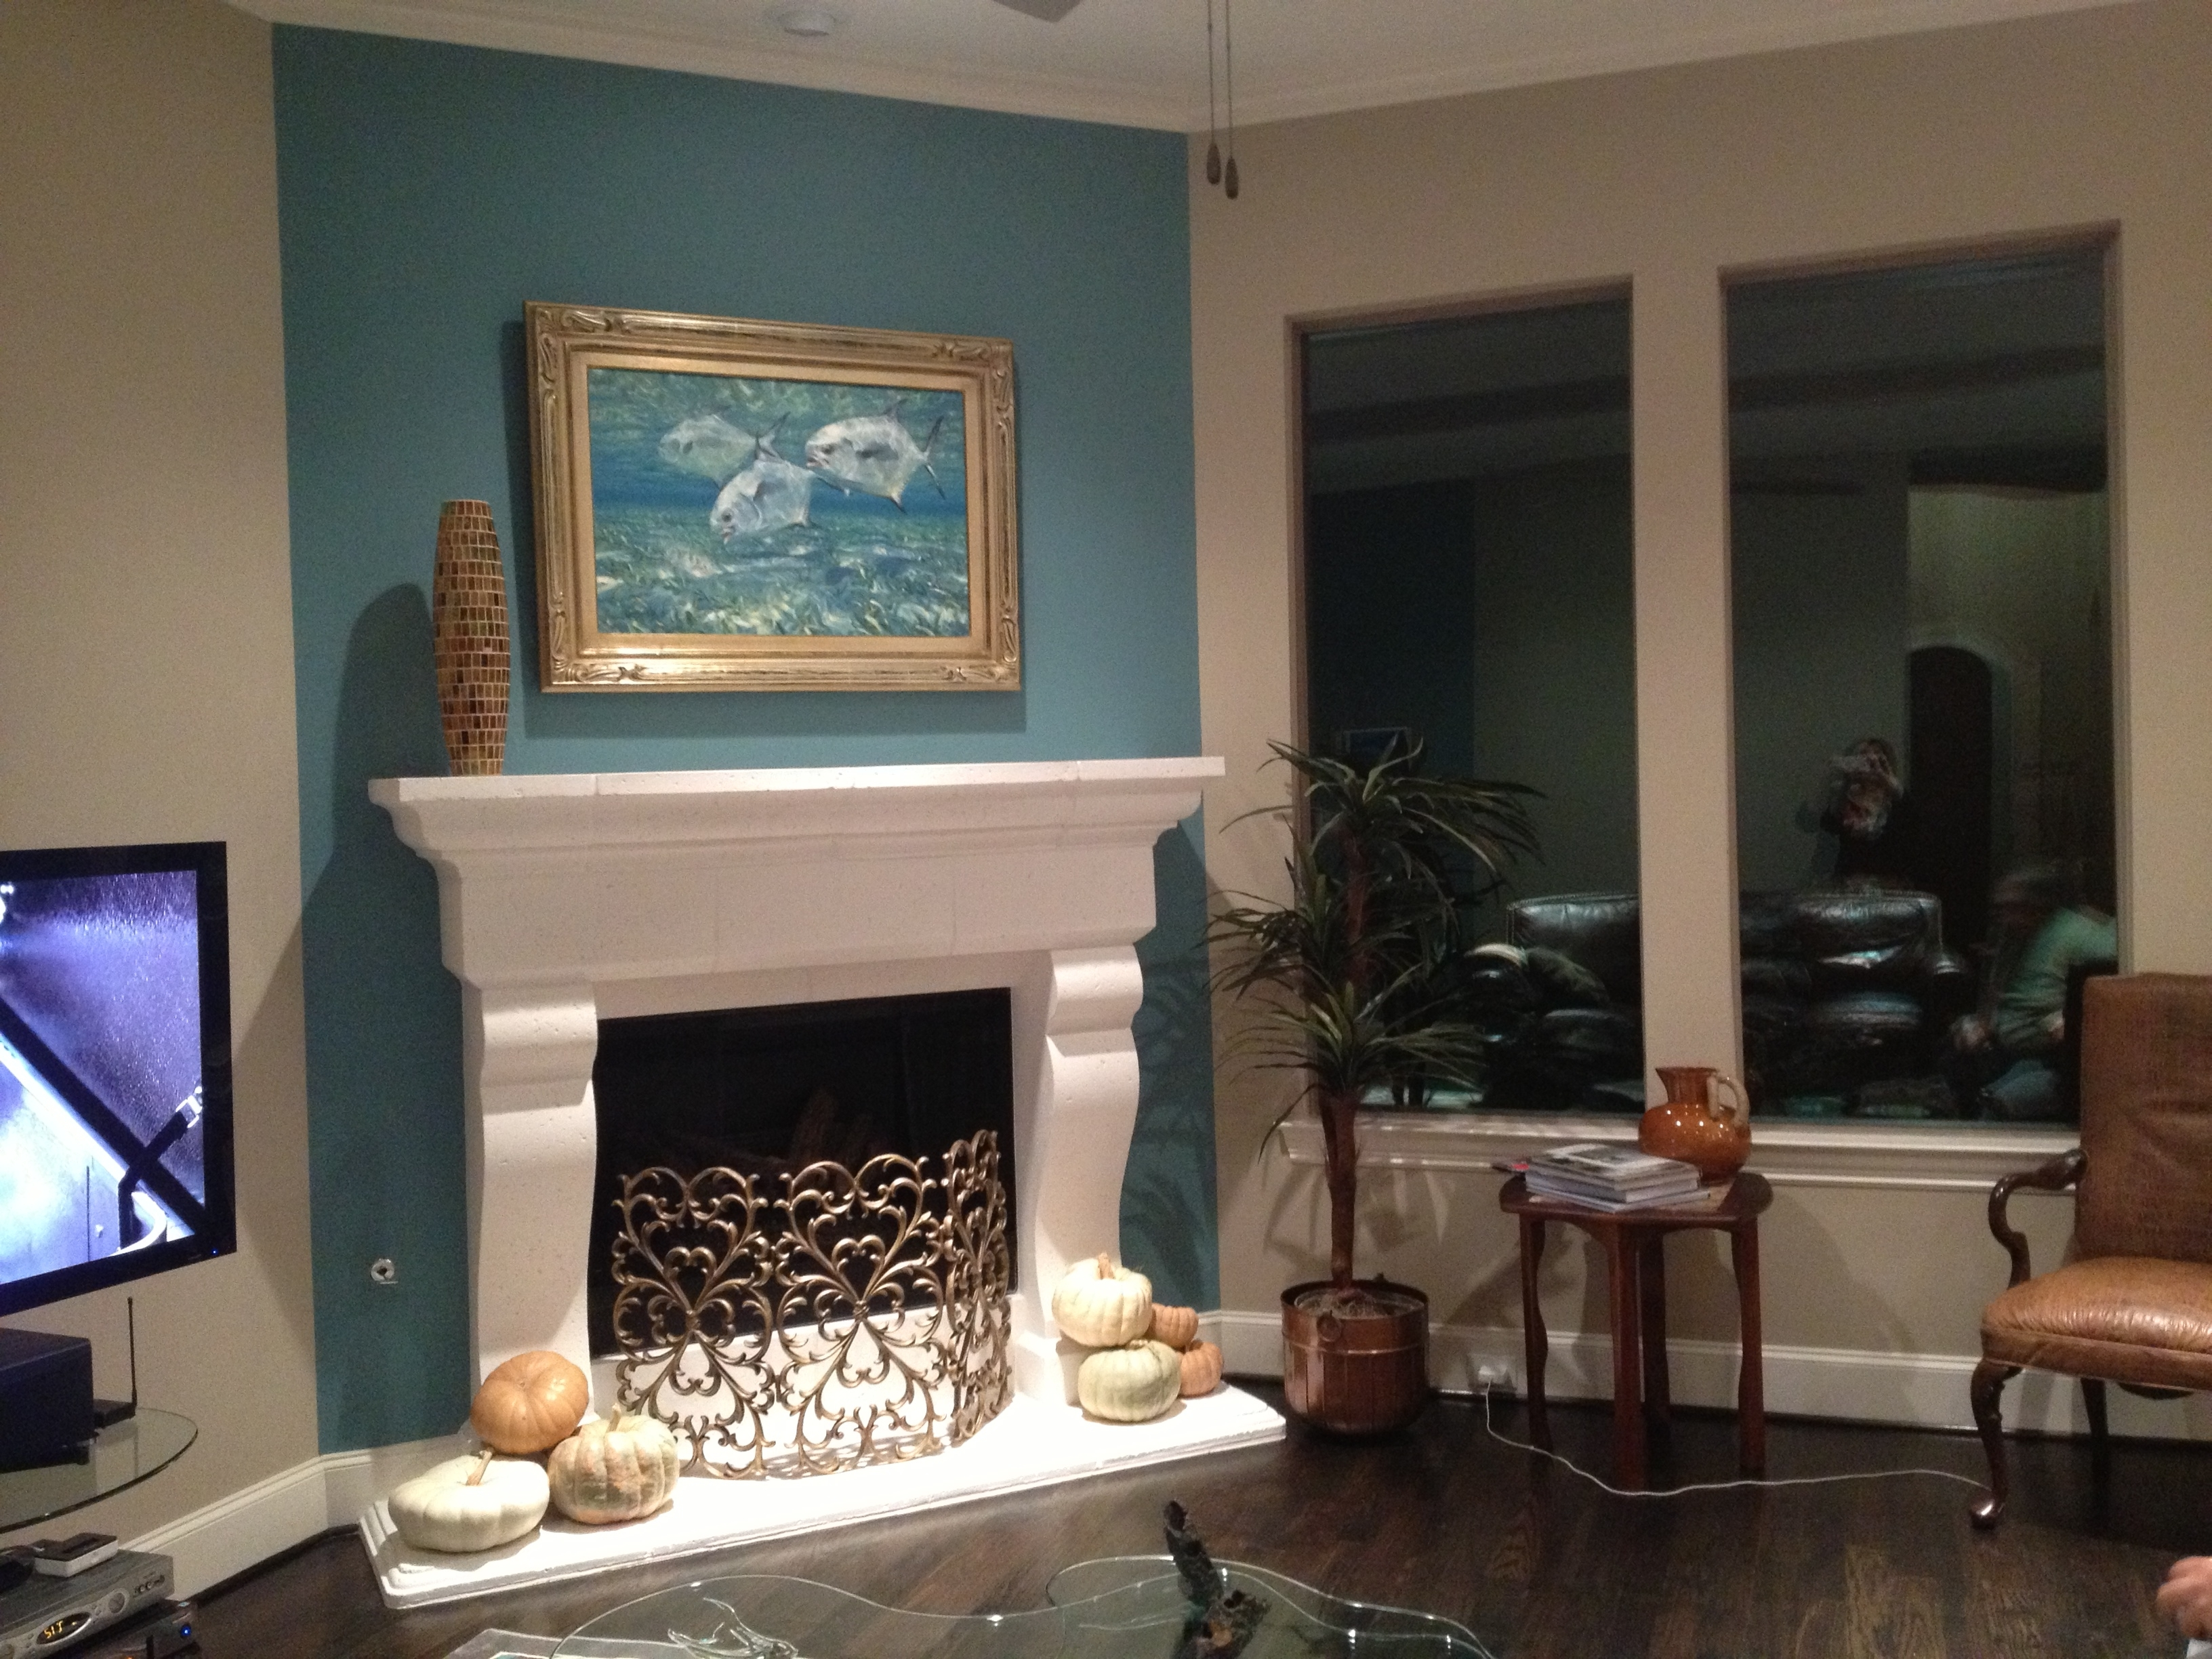 Fashionable Fireplace Wall Accents Intended For Fireplace Accent Wall Complements Painting (View 2 of 15)